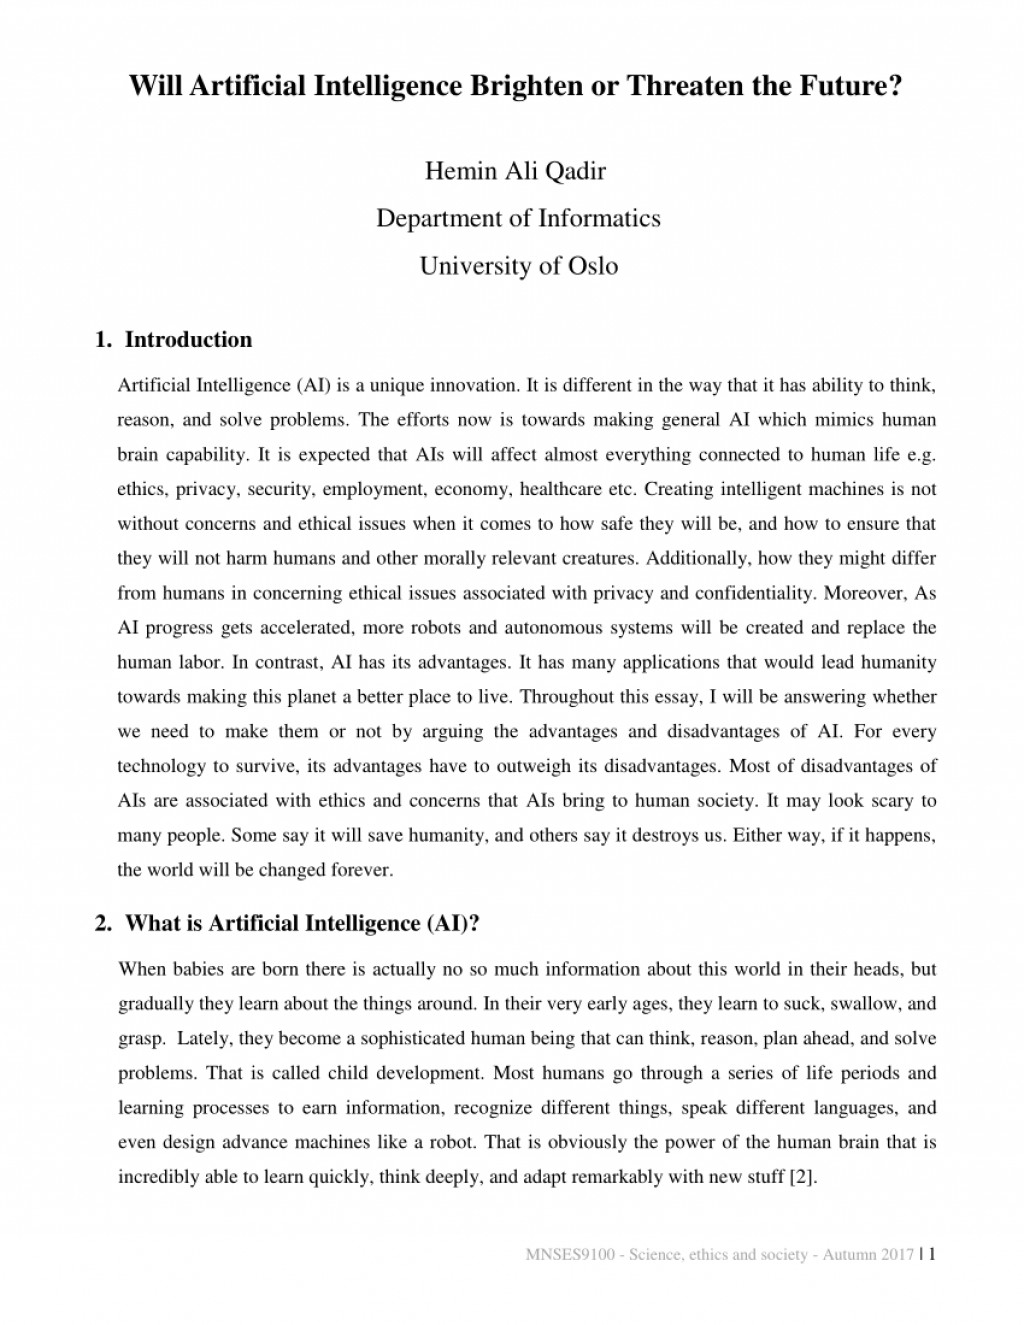 005 Artificial Intelligence Essay Largepreview Striking Argumentative Outline Paper Presentation Topics Pdf Large